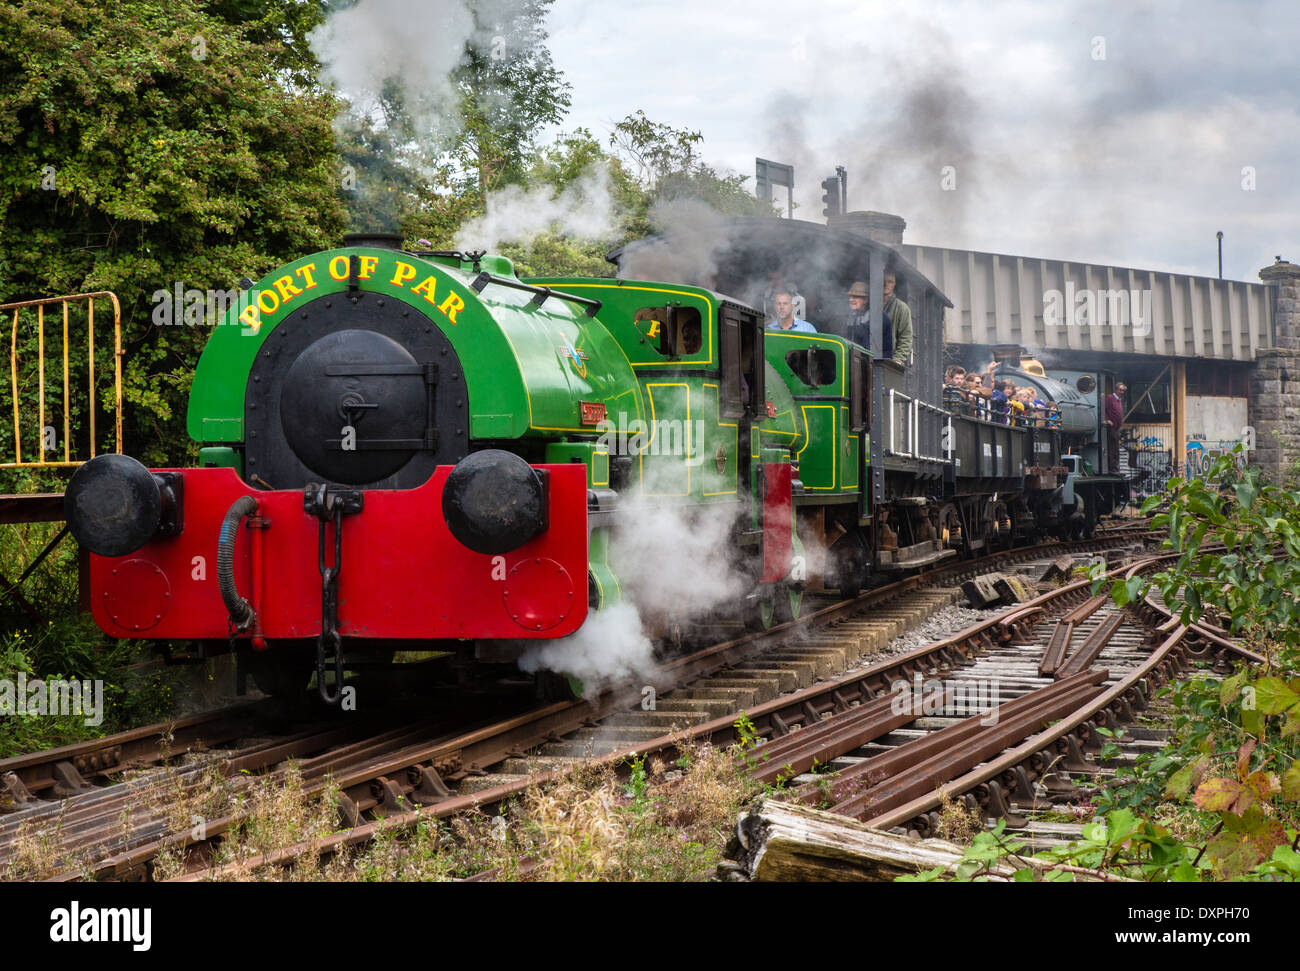 Steam trains pulling carriages along heritage track by the river Avon in Bristol UK - Stock Image